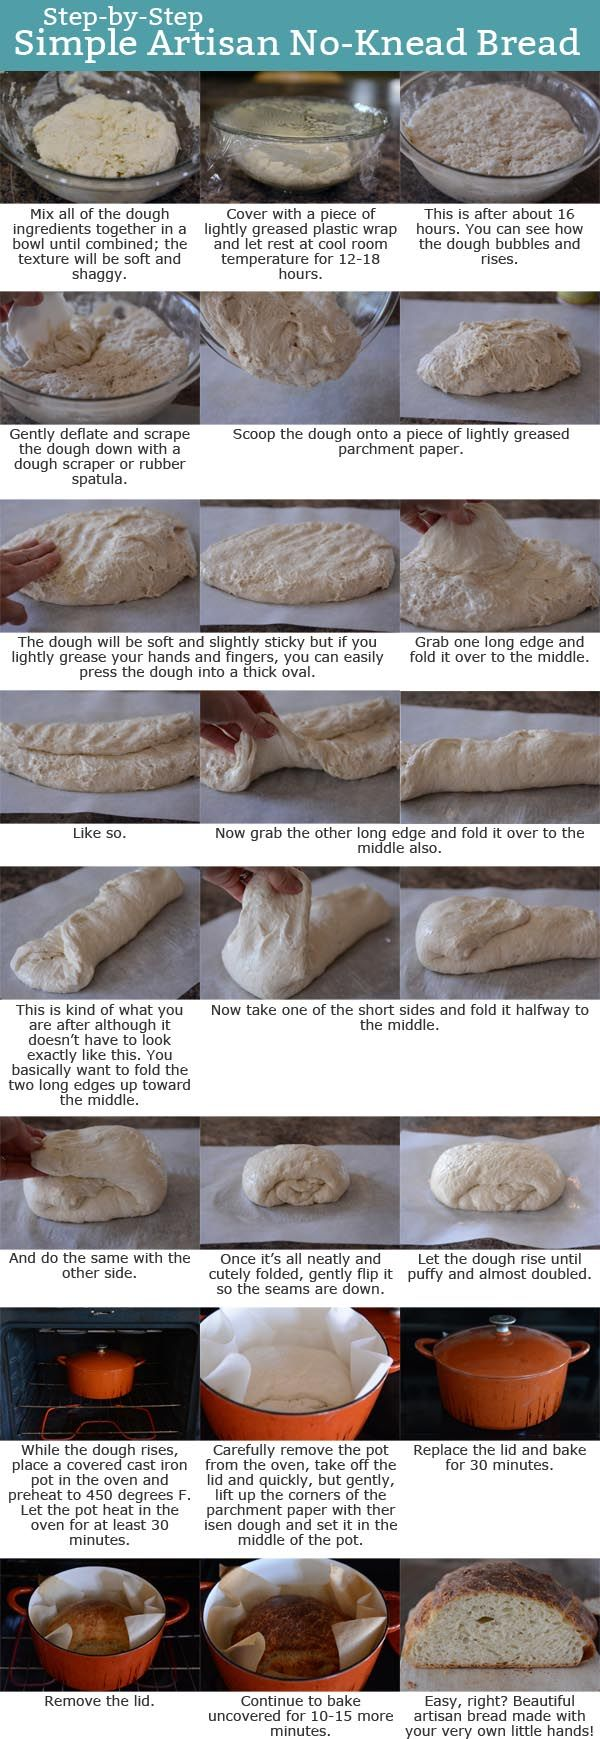 Artisan No-Knead Bread Step-by-Step Tutorial | Mel's Kitchen Cafe